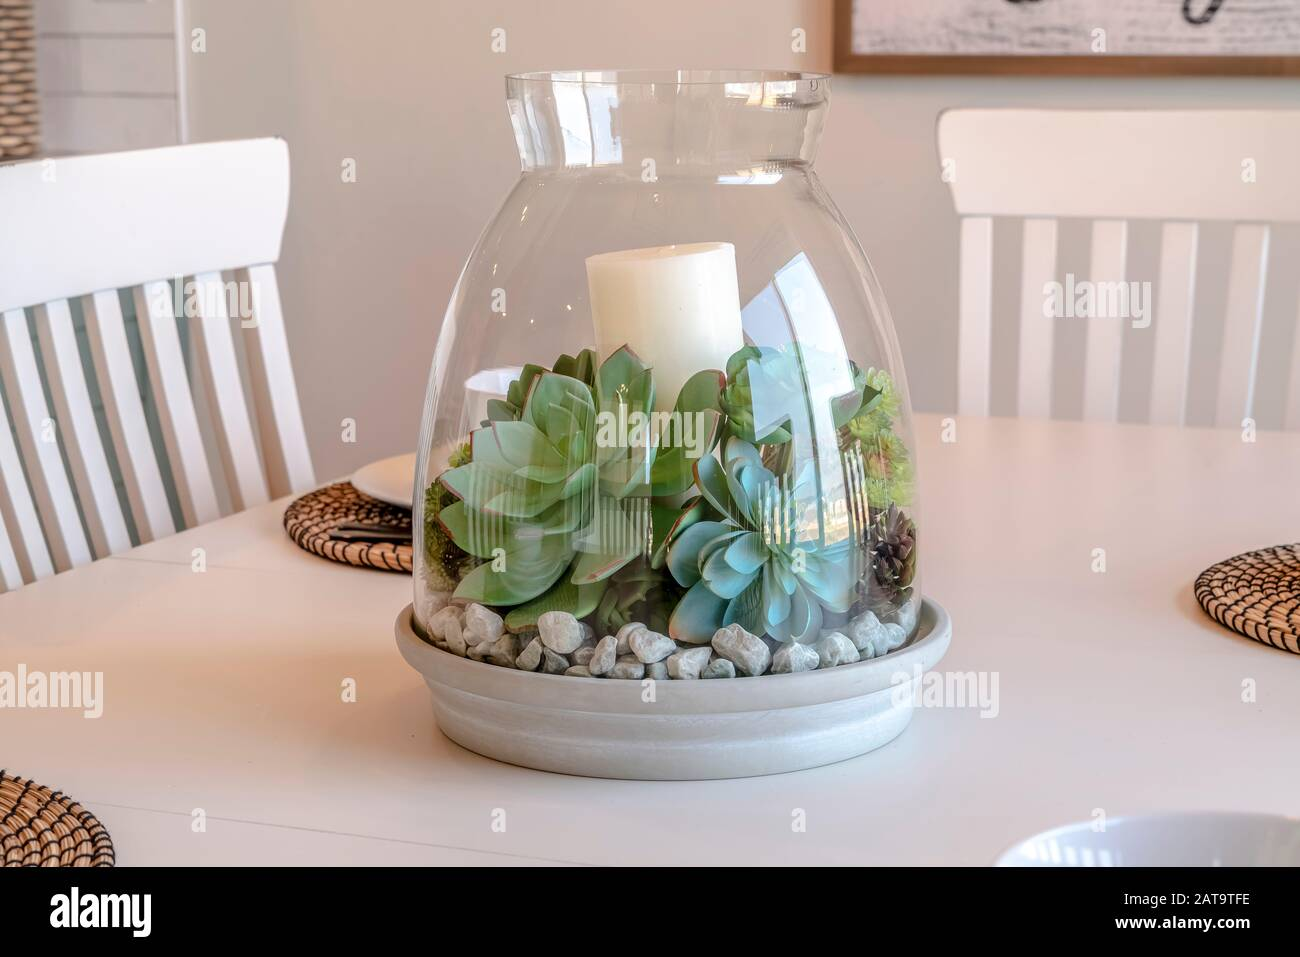 Ornamental Glass Jar With Plants And Candle On The Dining Table Of Home Stock Photo Alamy